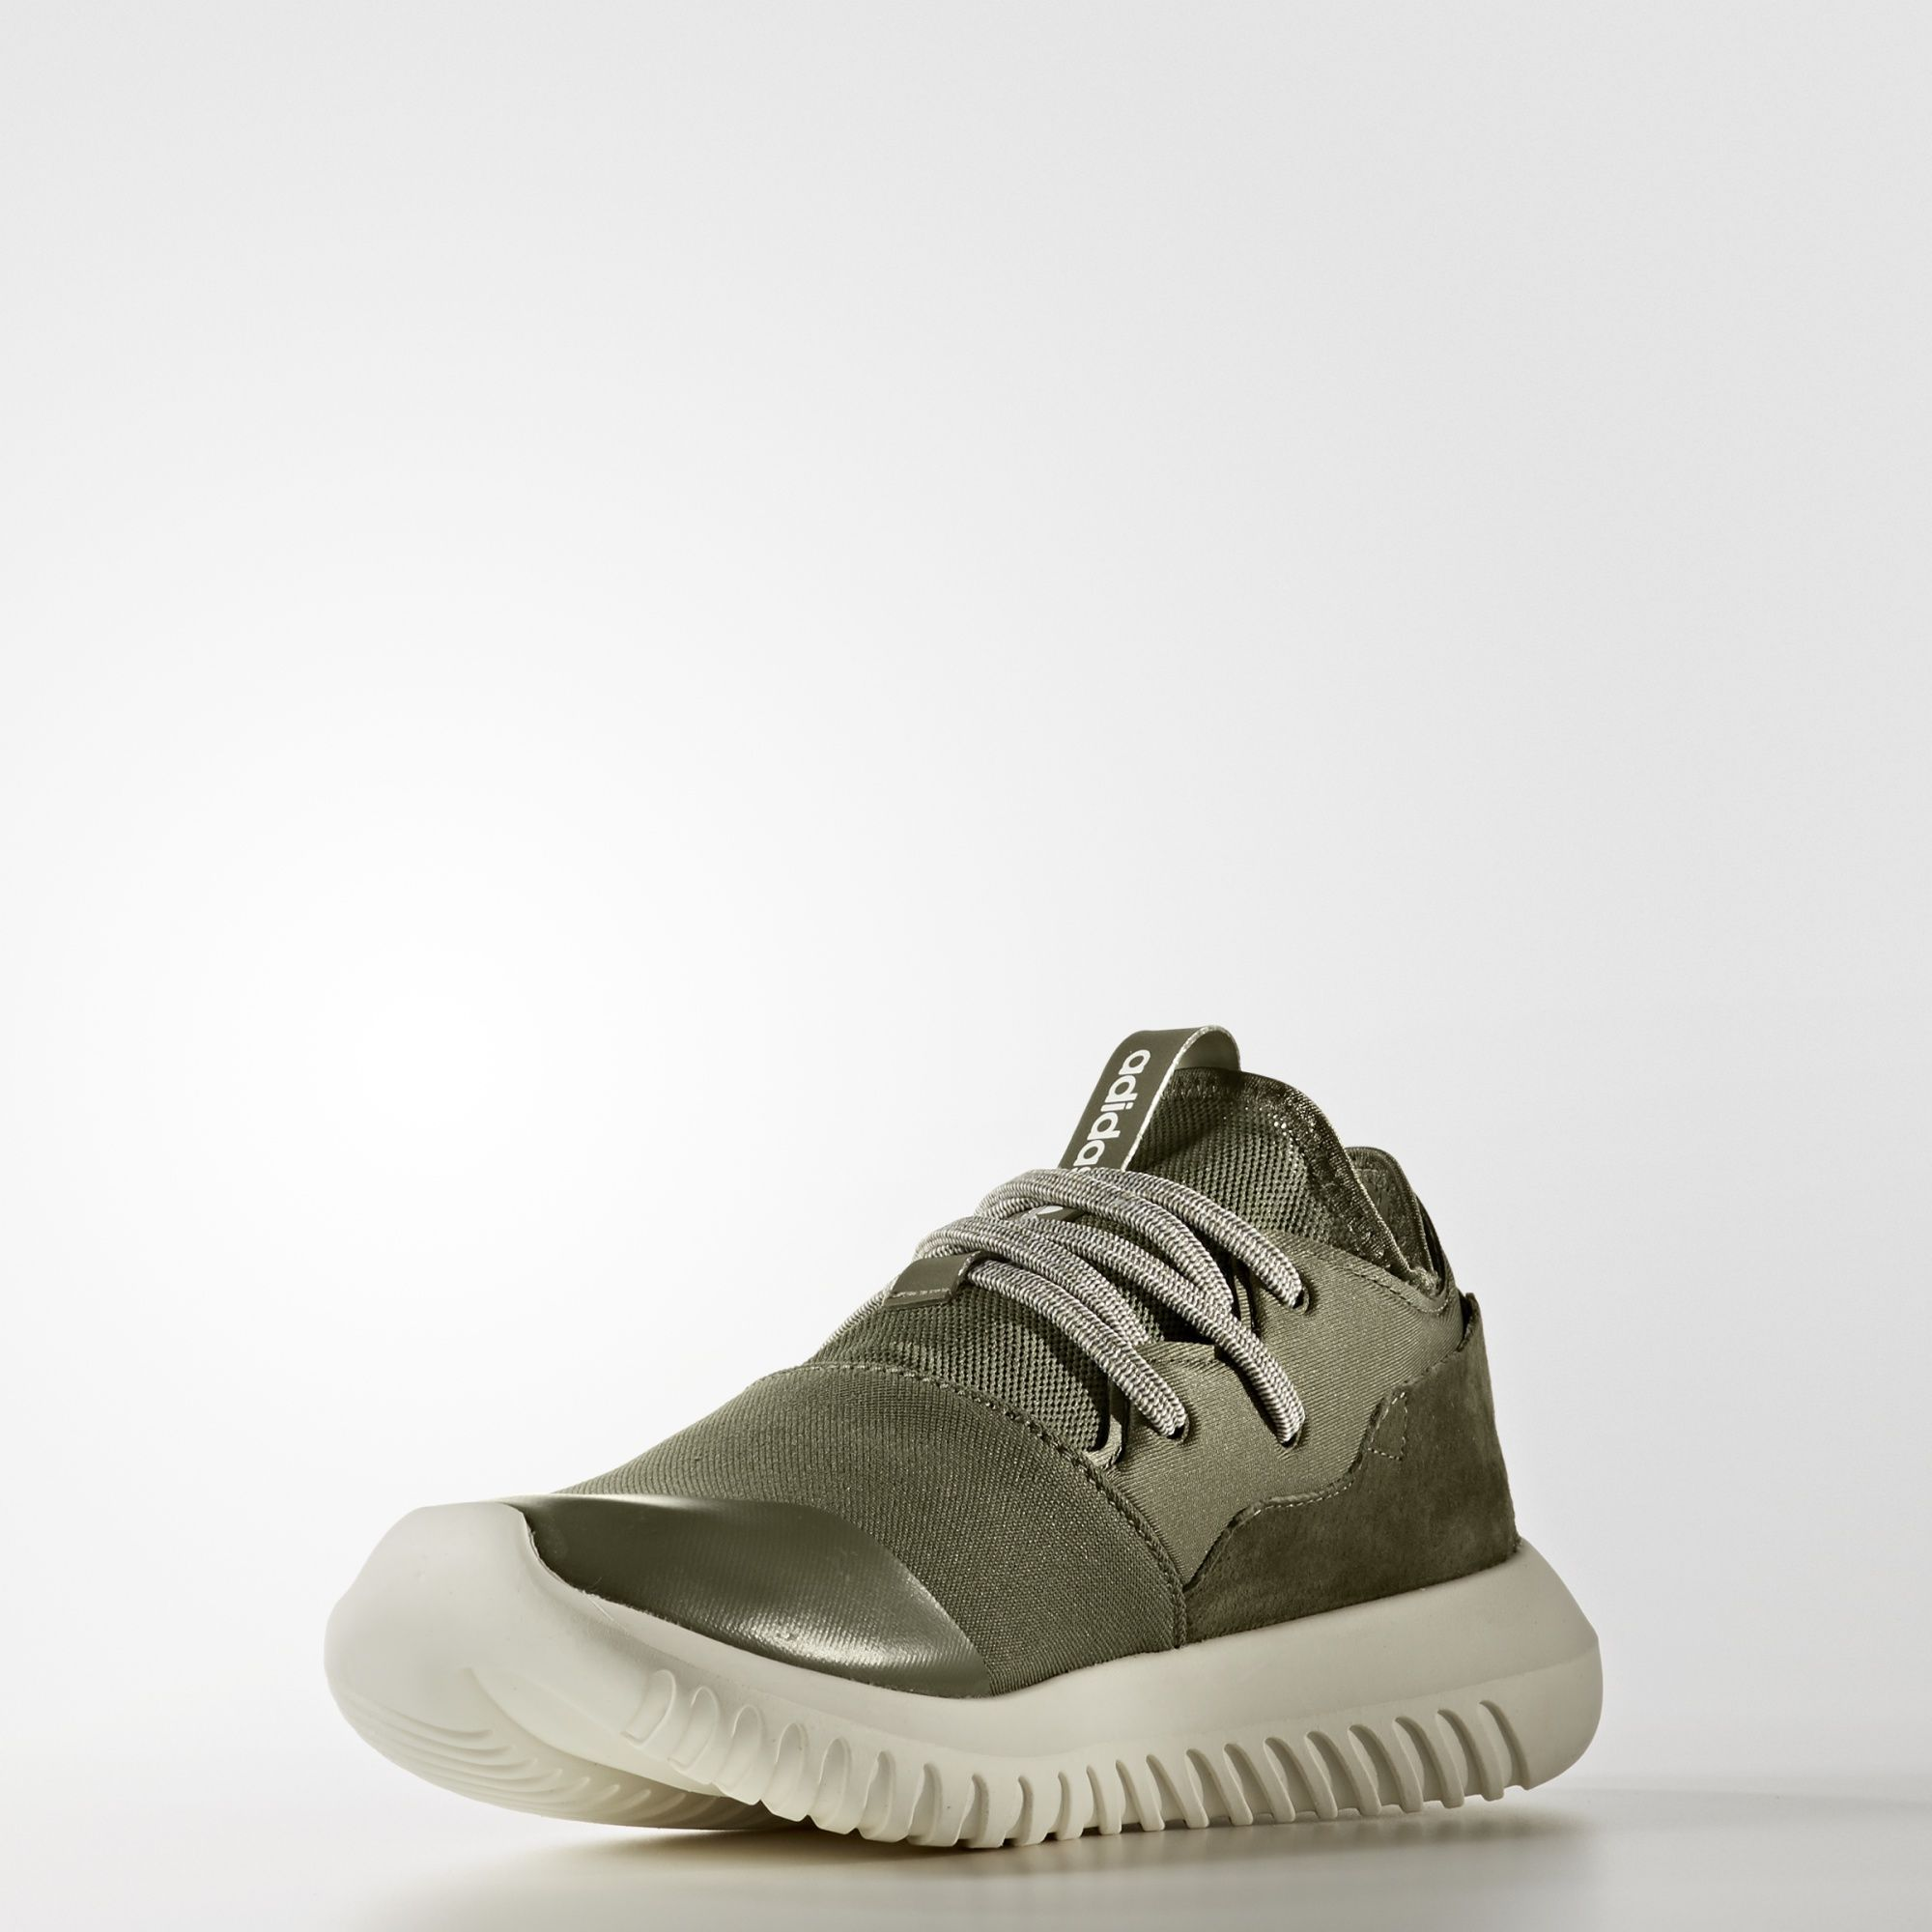 adidas - Women's Tubular Entrap Shoes